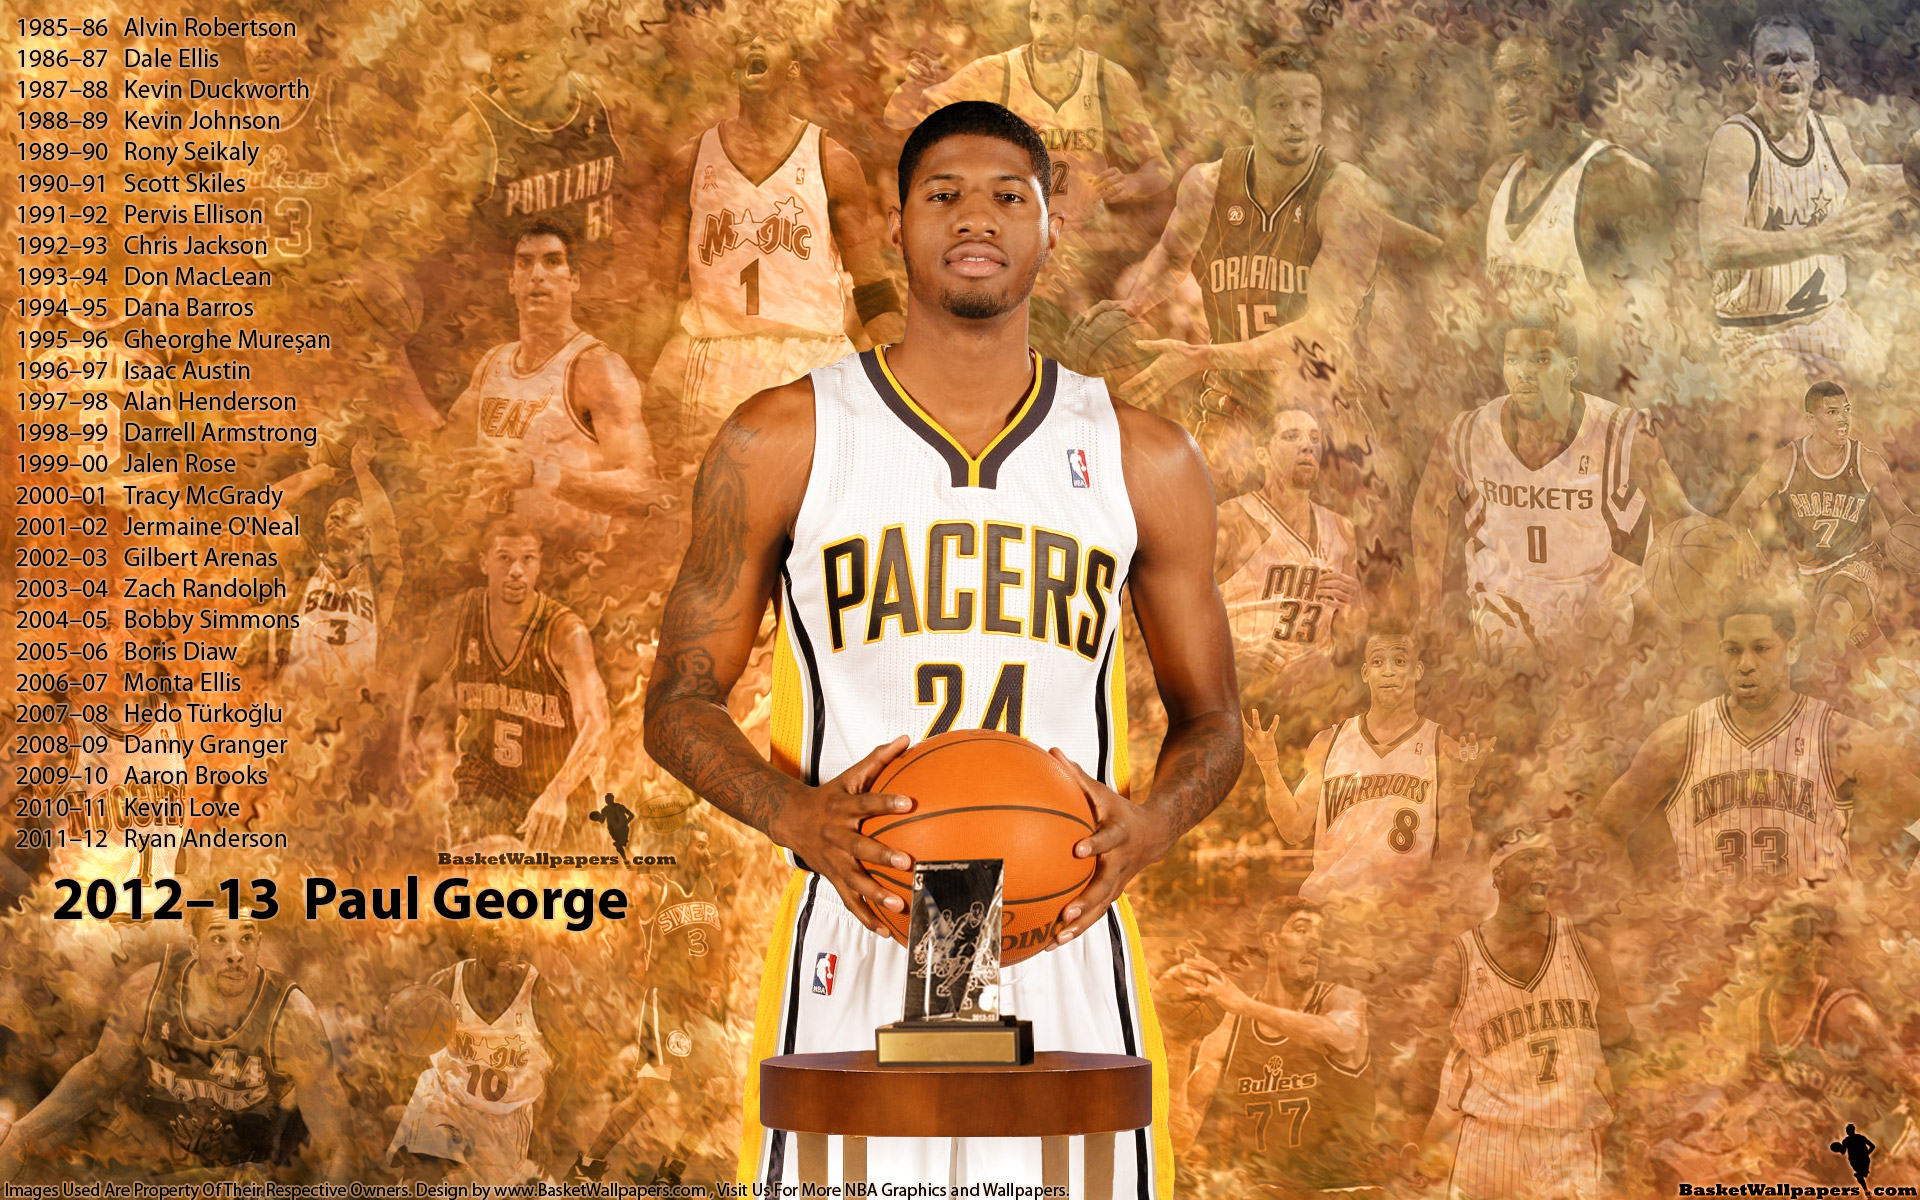 Paul george 2013 most improved player of the year 19201200 paul george 2013 most improved player of the year 19201200 wallpaper voltagebd Choice Image